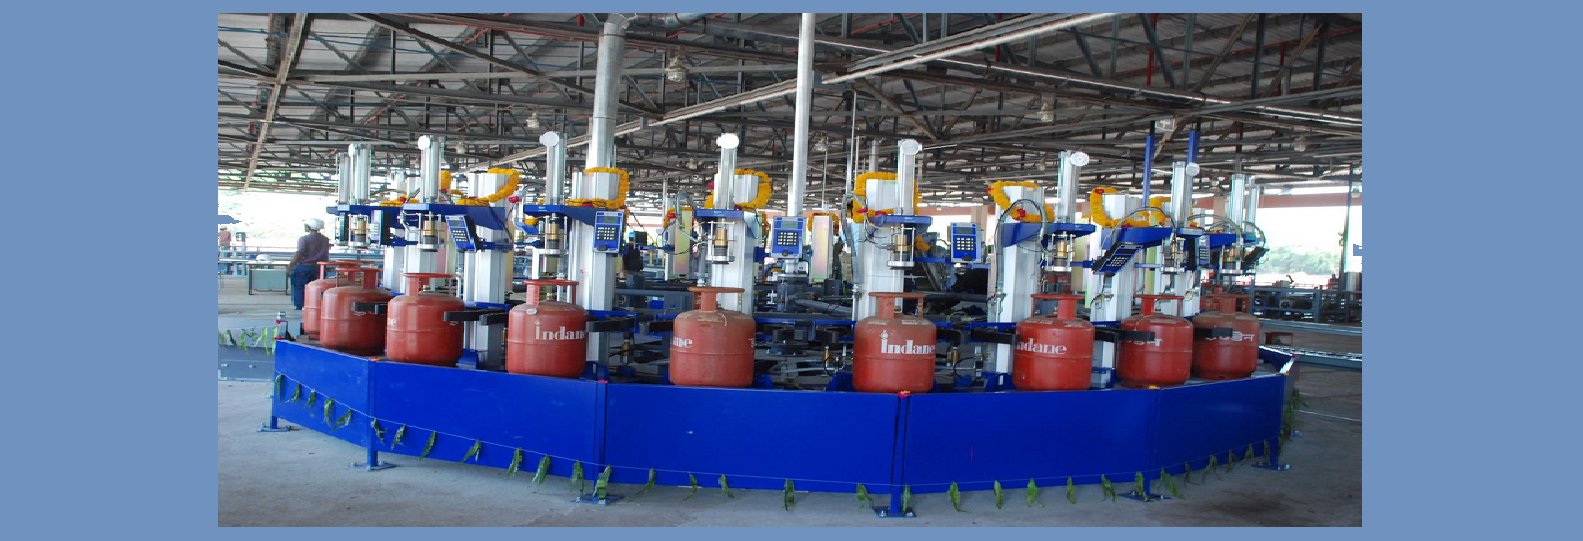 LPG Bottling Plant [Licence in Form-III of SMPV-2016 and Form E&F of GCR-2016]